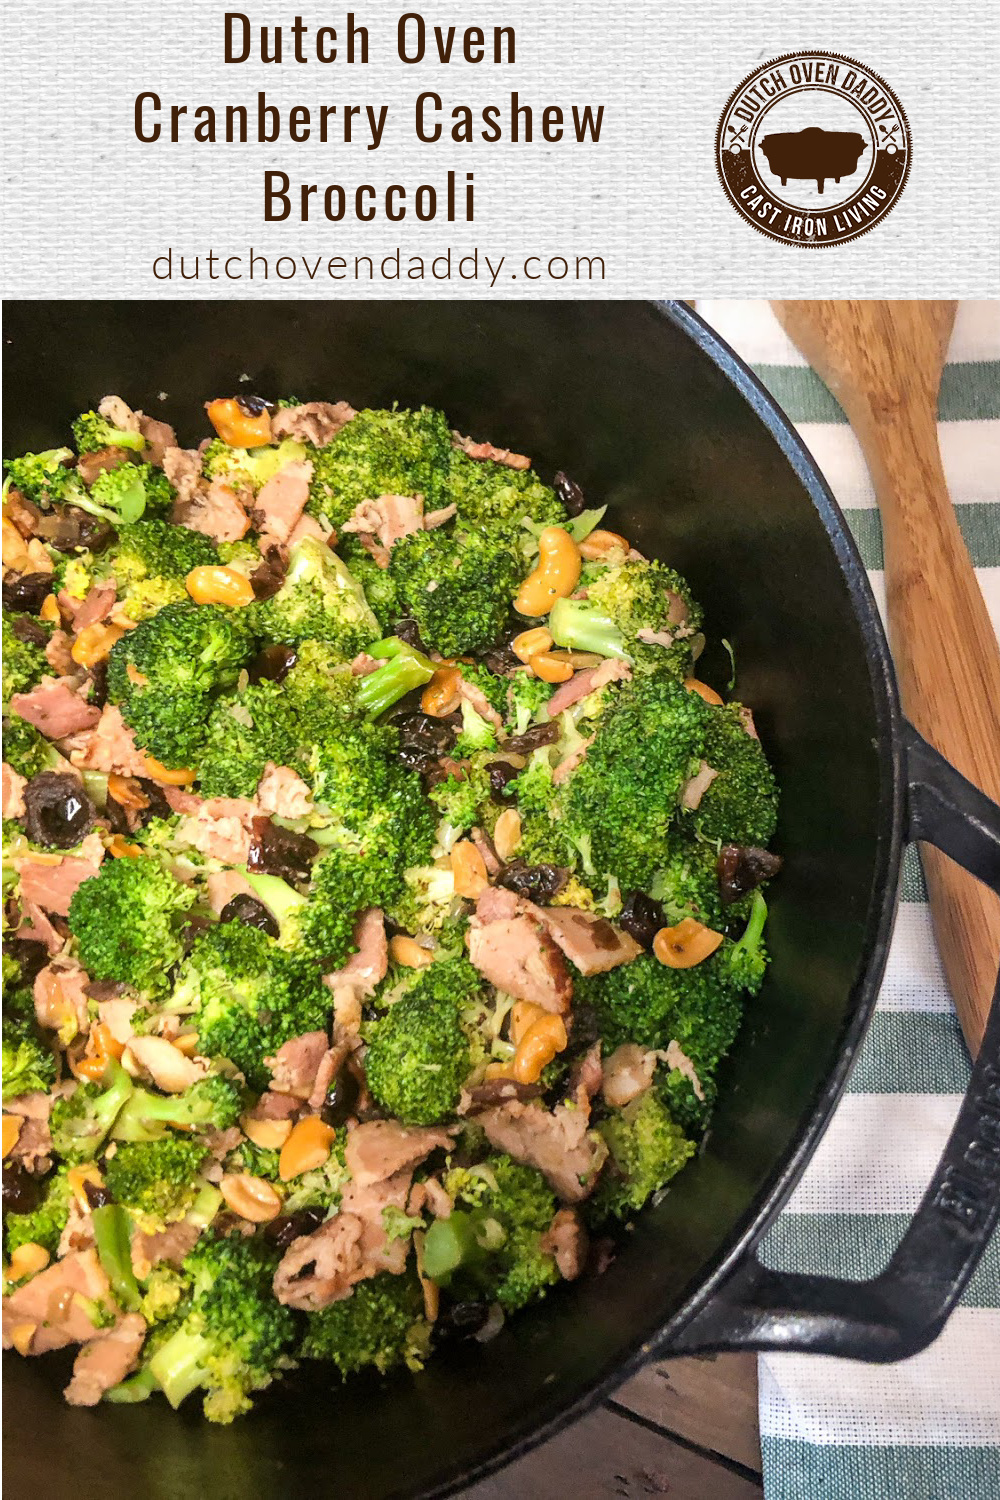 Half-view of a Dutch oven with cooked broccoli with bacon, cashews, and cranberries.